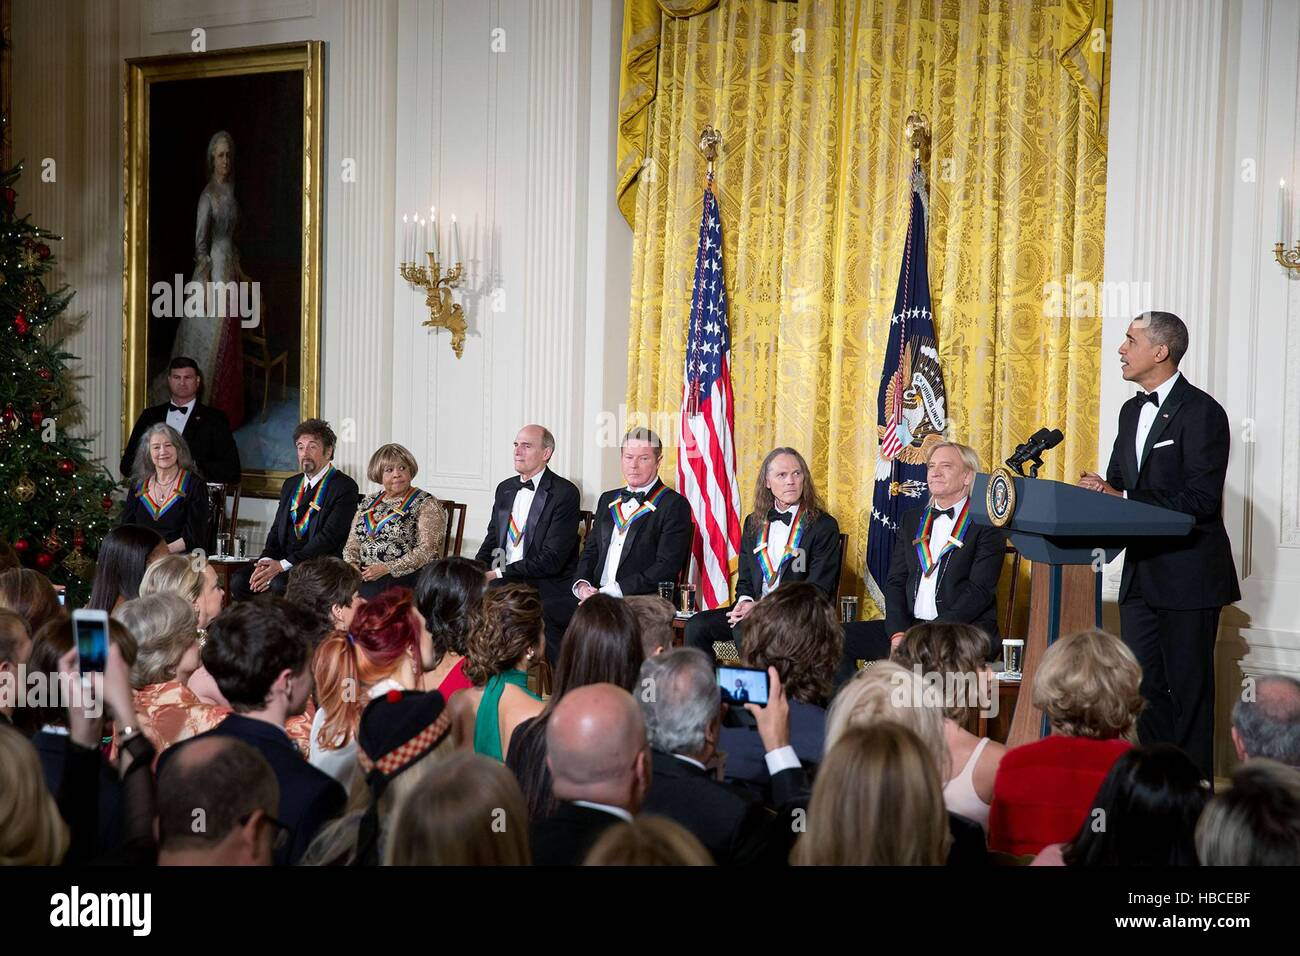 U.S President Barack Obama address recipients of the 2016 Kennedy Center Honors during a reception in the East Room - Stock Image